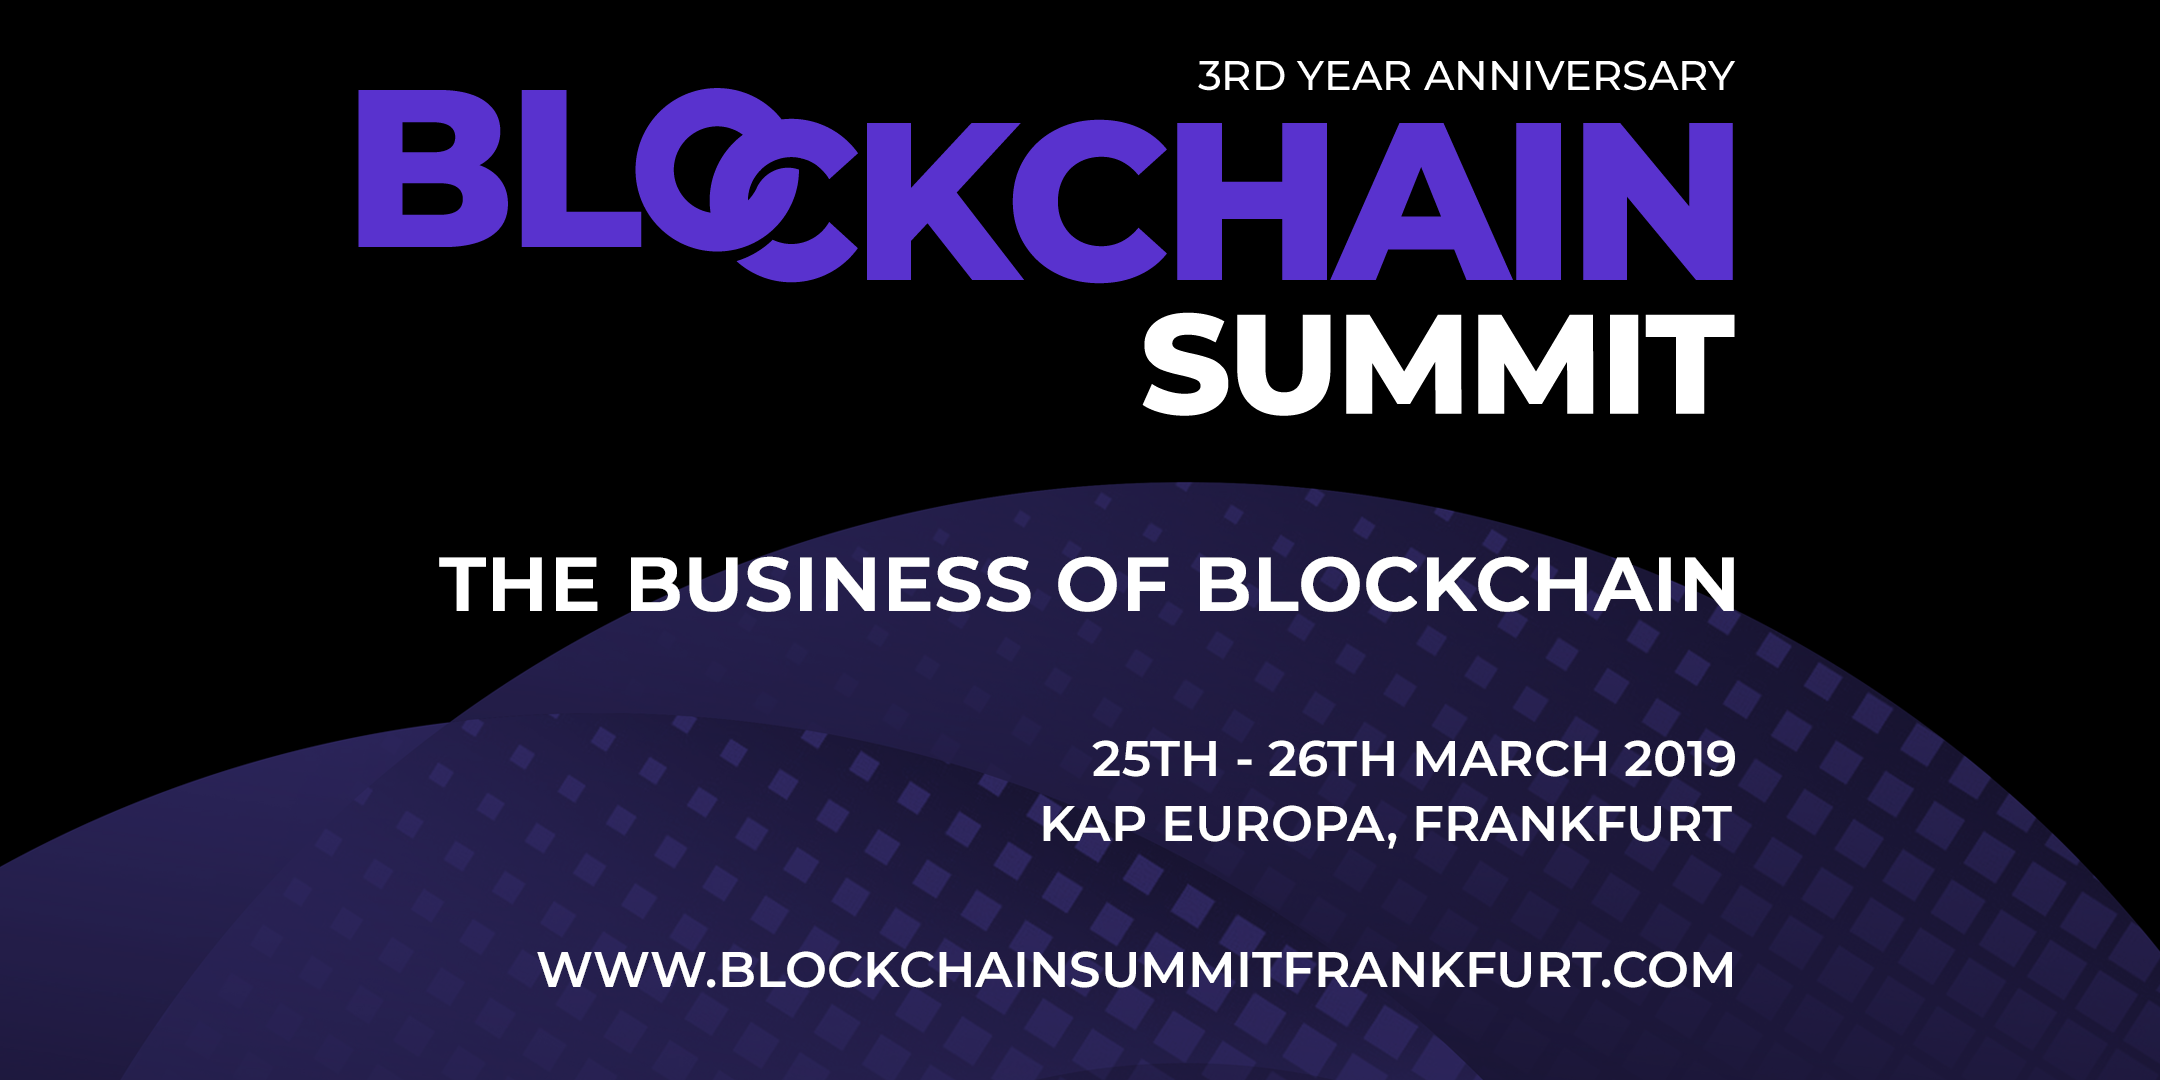 Blockchain Summit Frankfurt organized by Blockchain Summit Series